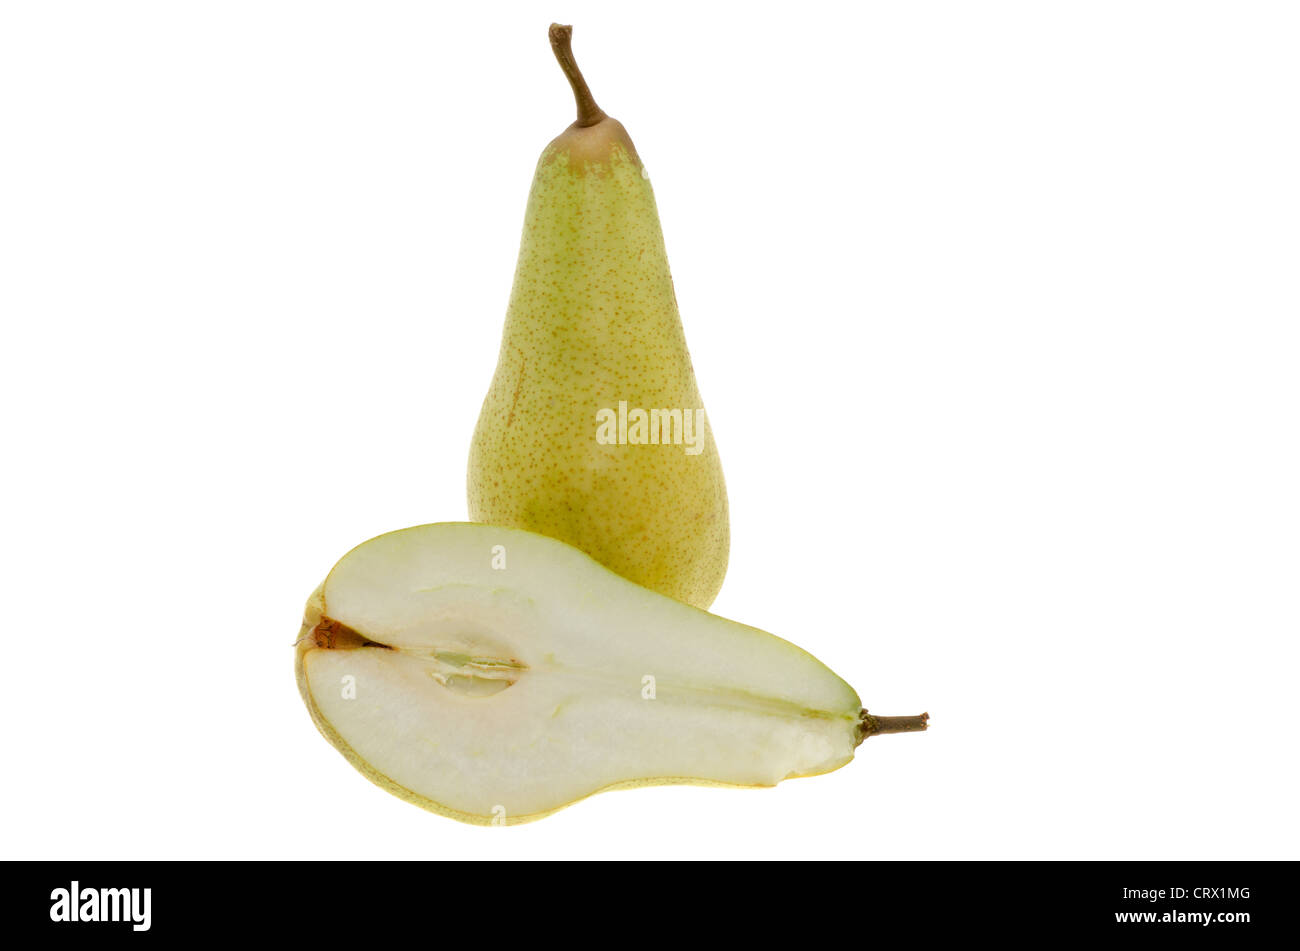 Fresh whole green pear and a pear cut in half - studio shot with a white background. - Stock Image